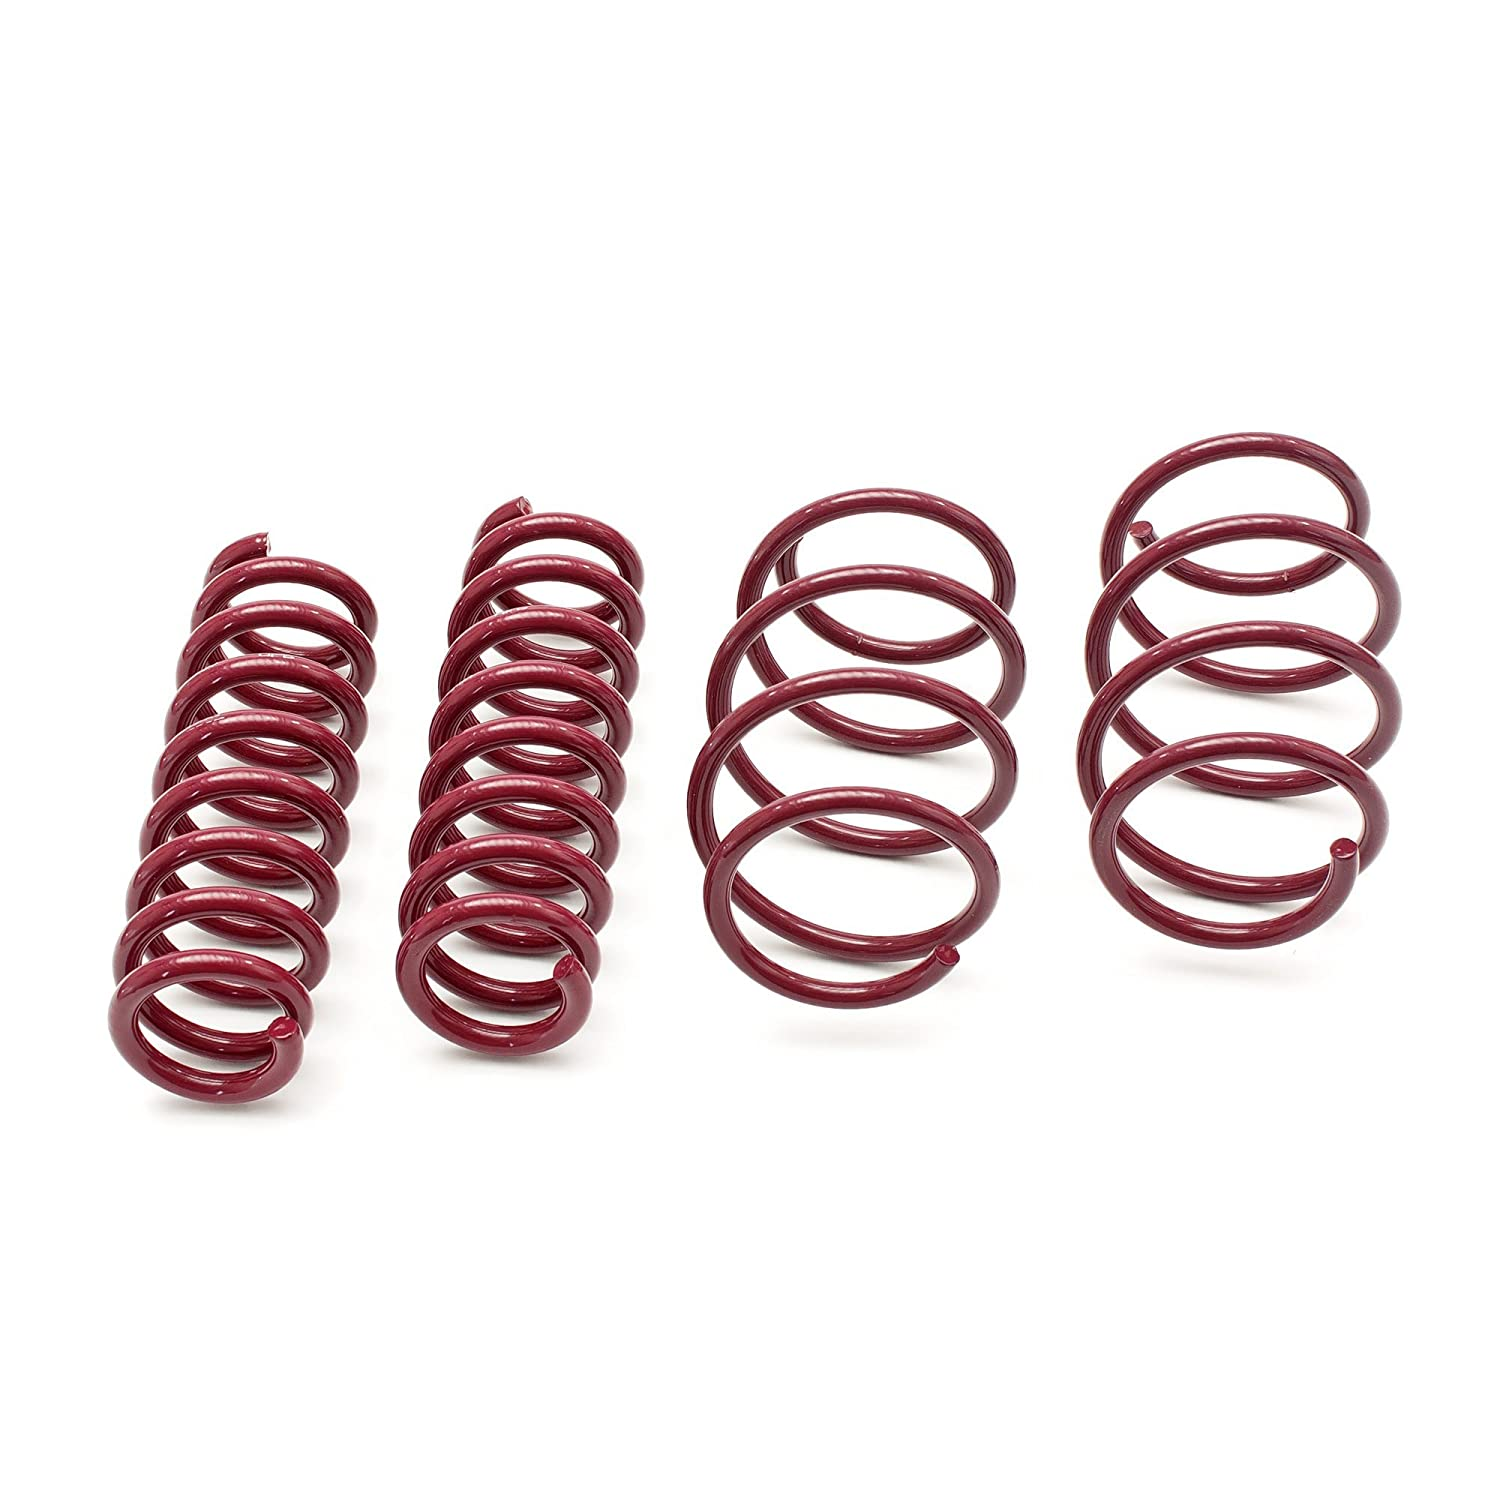 Vogtland 951018 Sport Lowering Spring Kit Coil Springs Fits Bmw 3 E30 6 Cyl.